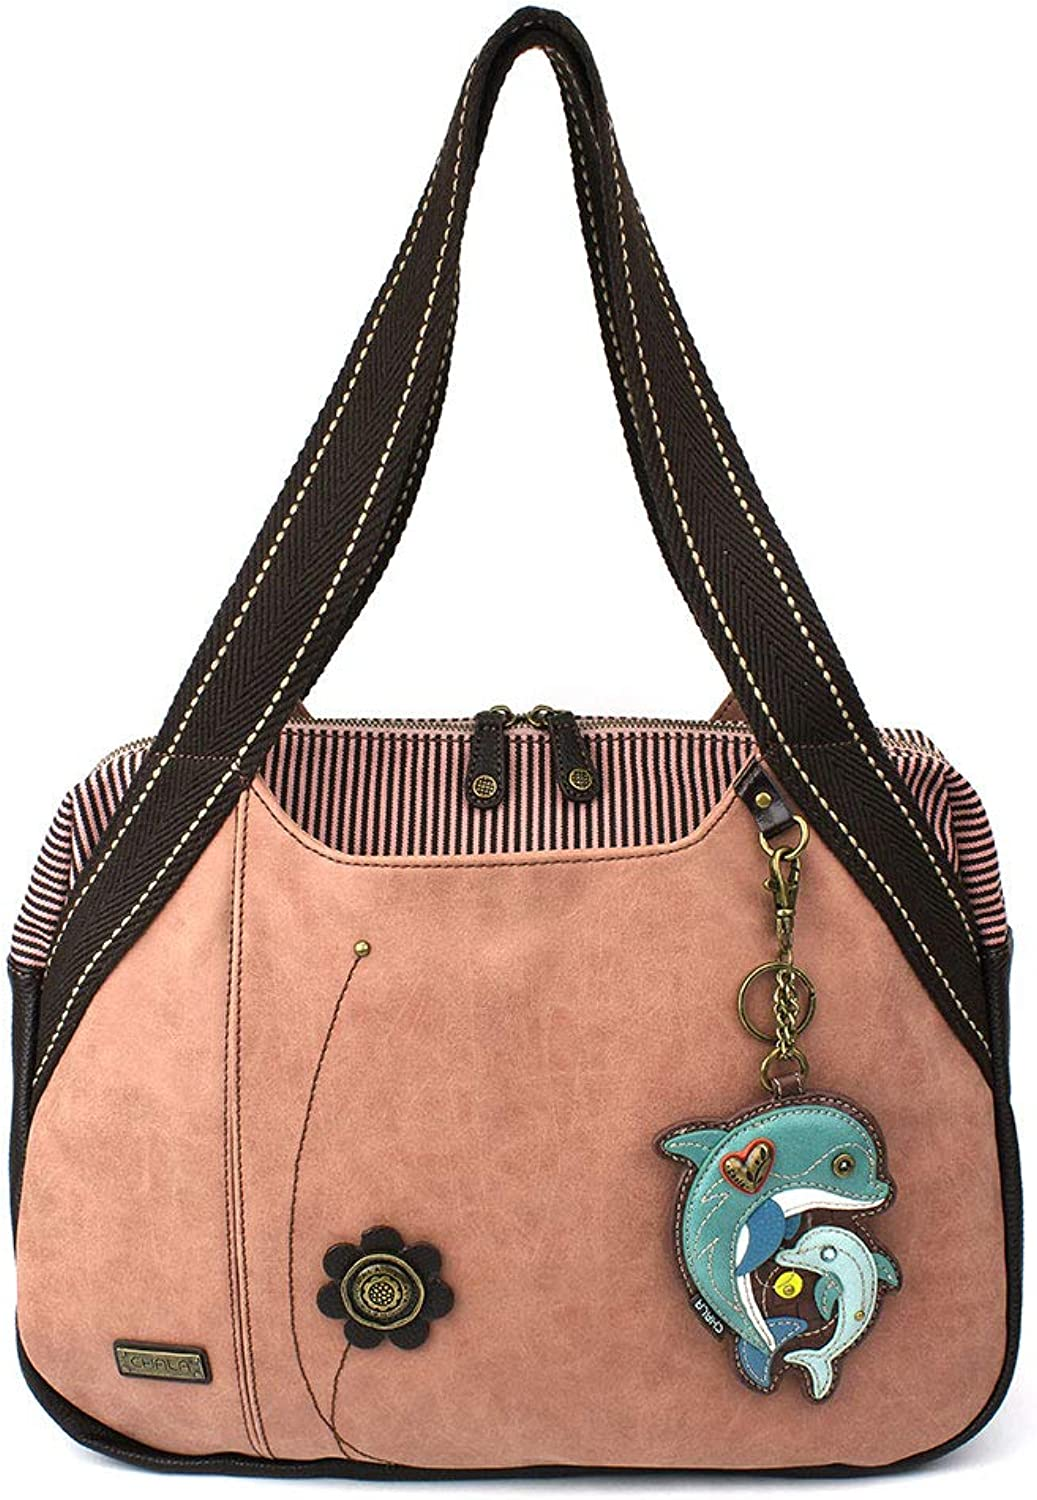 Chala Handbags Dust pink Shoulder Purse Tote Bag with Key Fob Coin Purse